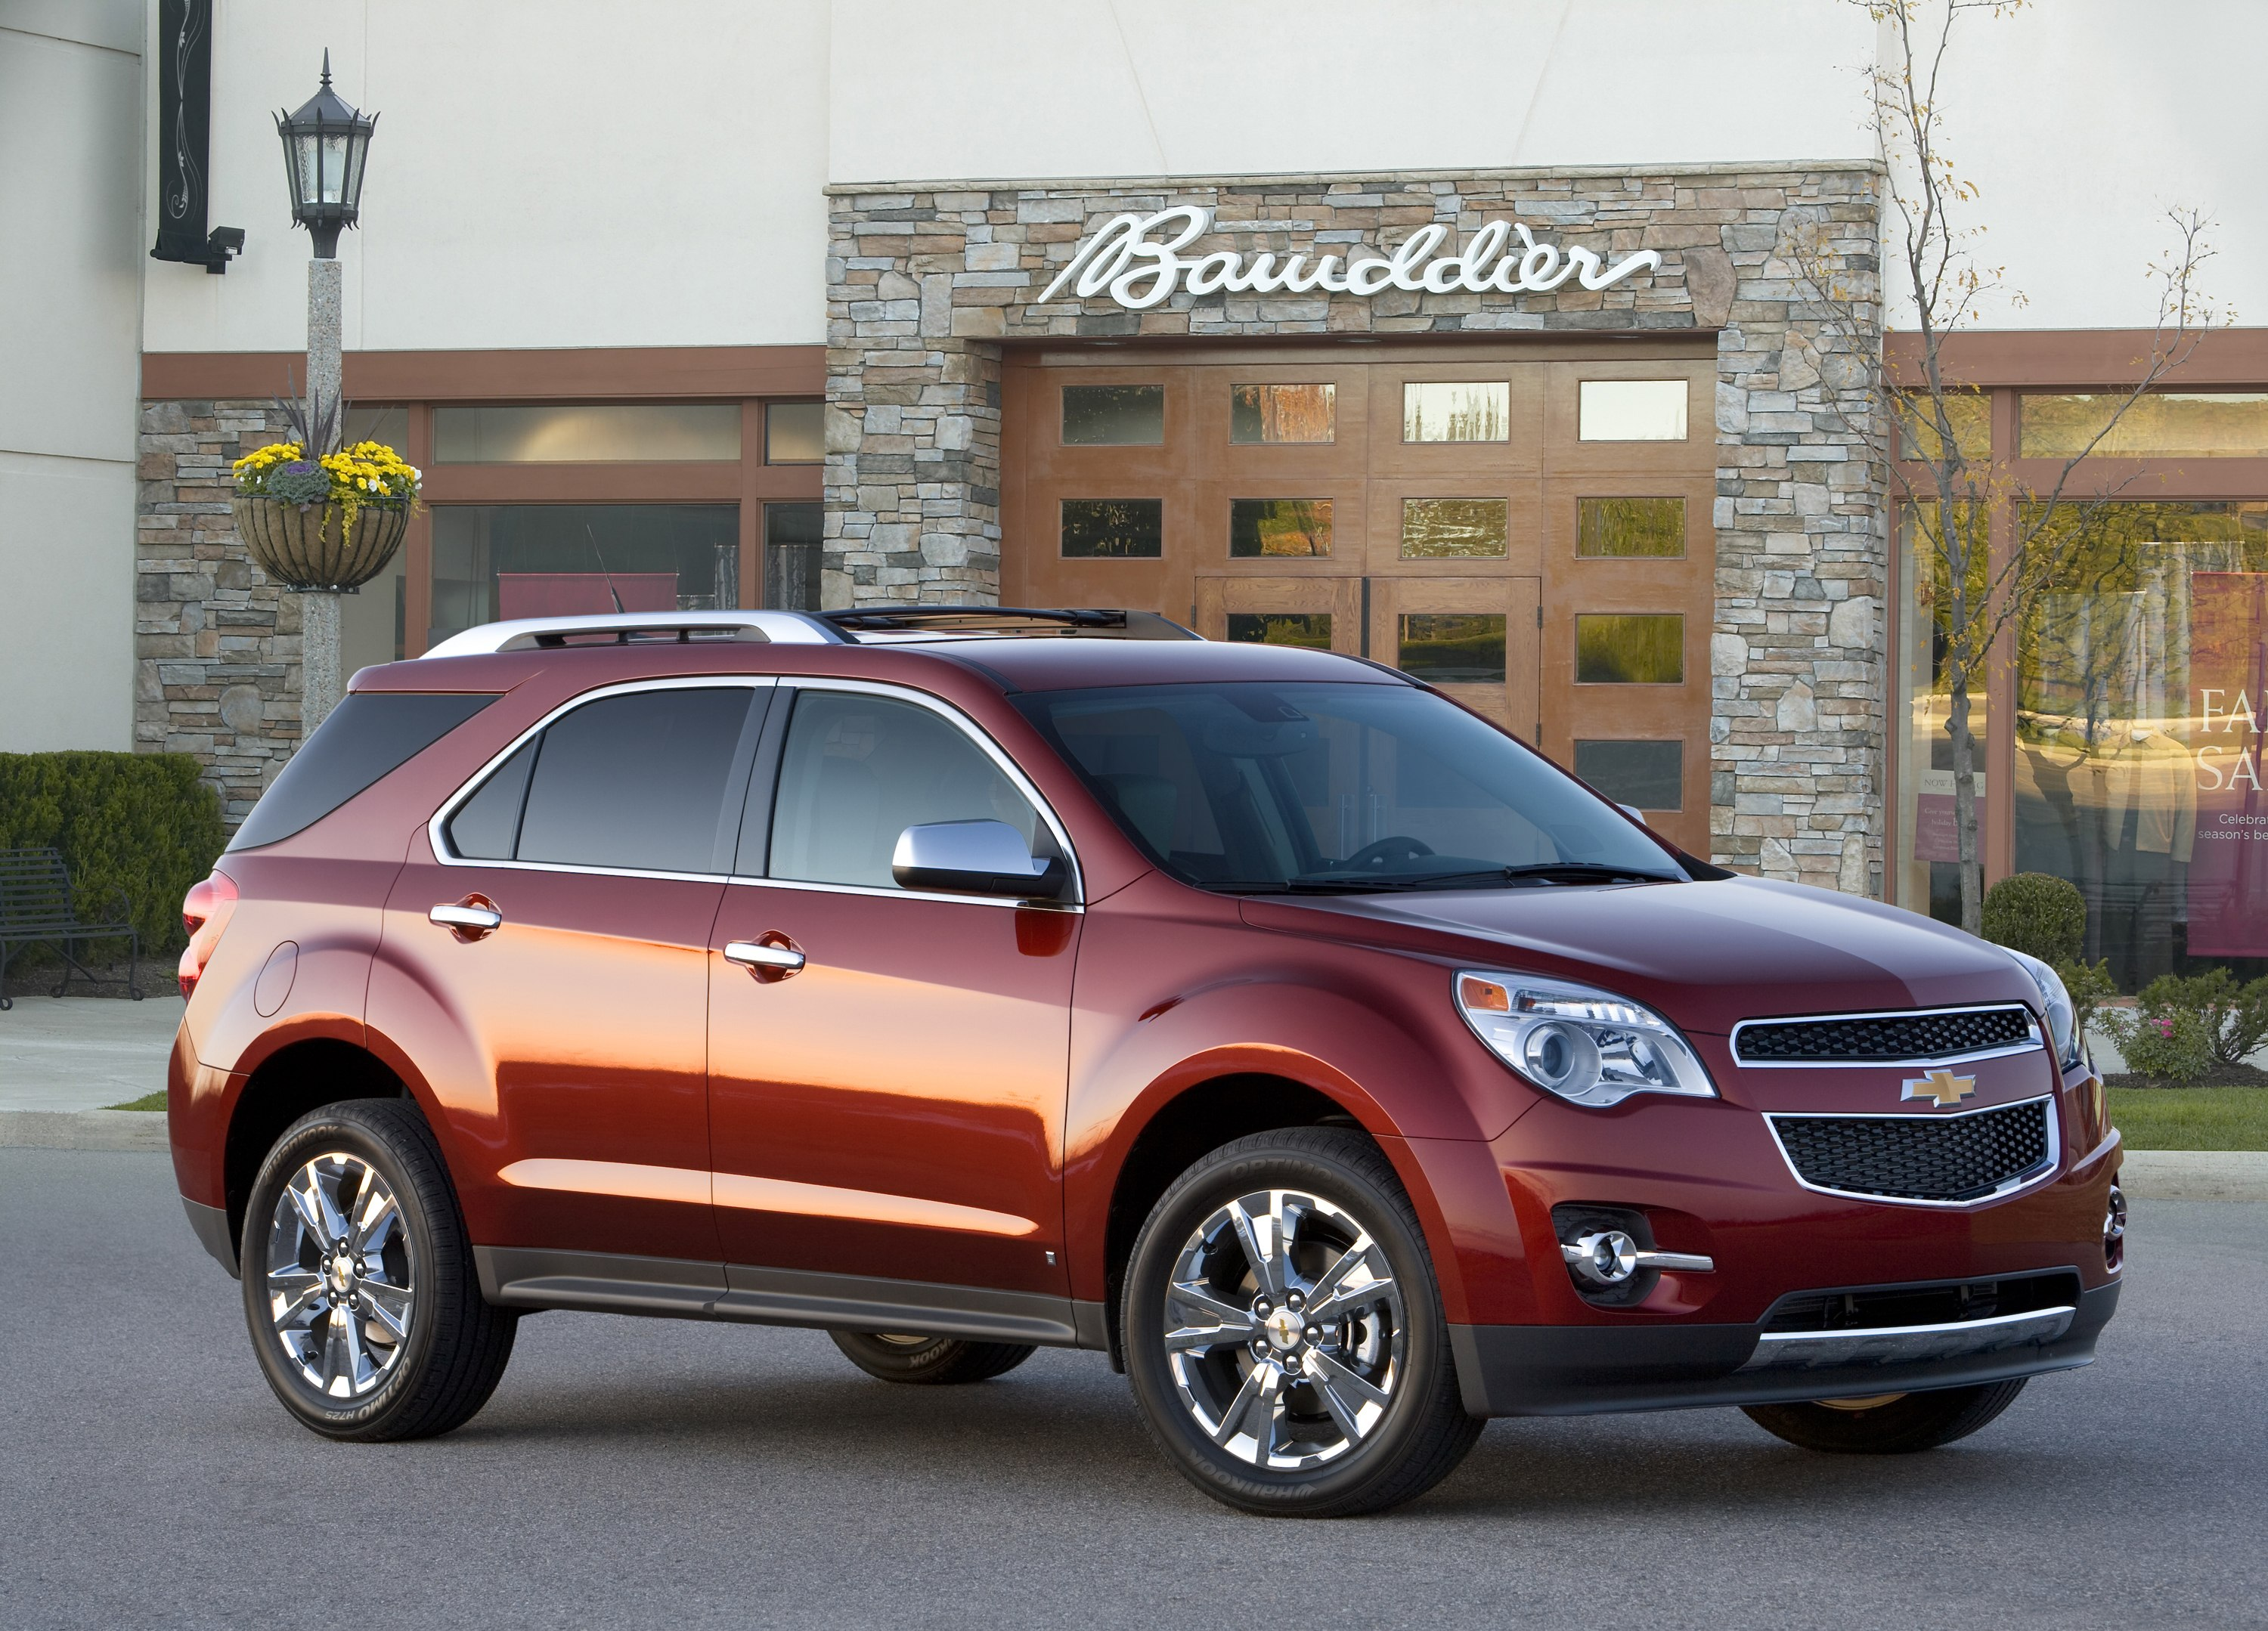 2010 chevrolet equinox best chevy suv the car family. Black Bedroom Furniture Sets. Home Design Ideas